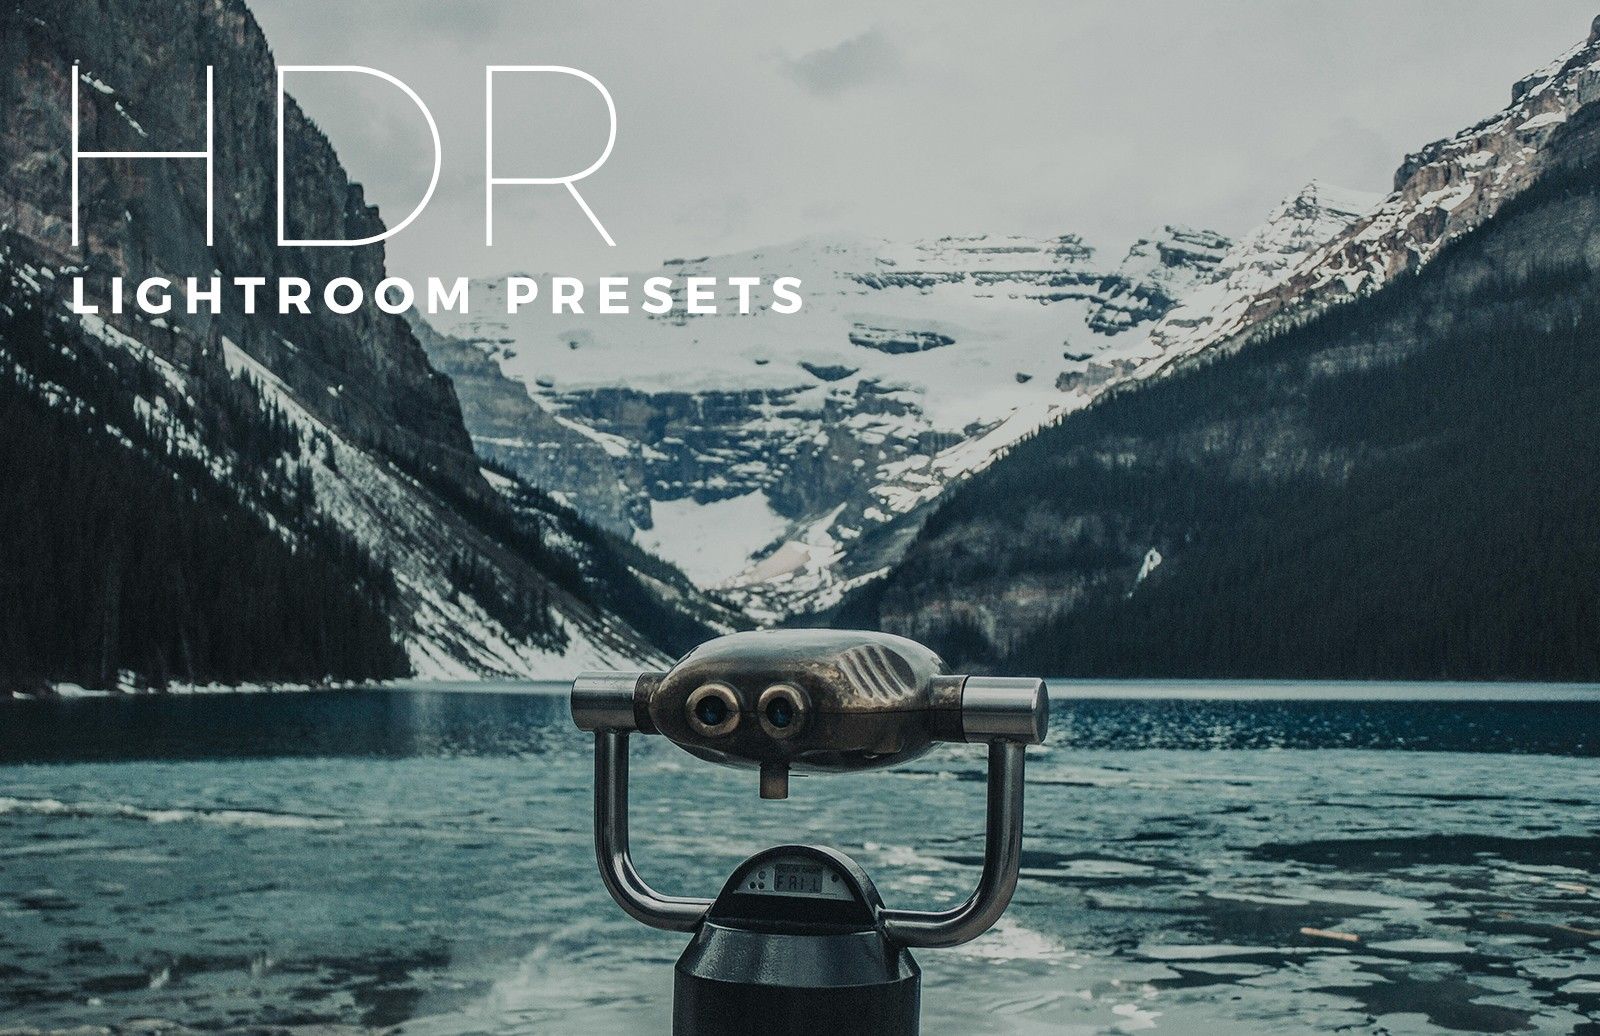 Hdr  Lightroom  Presets  Preview 1